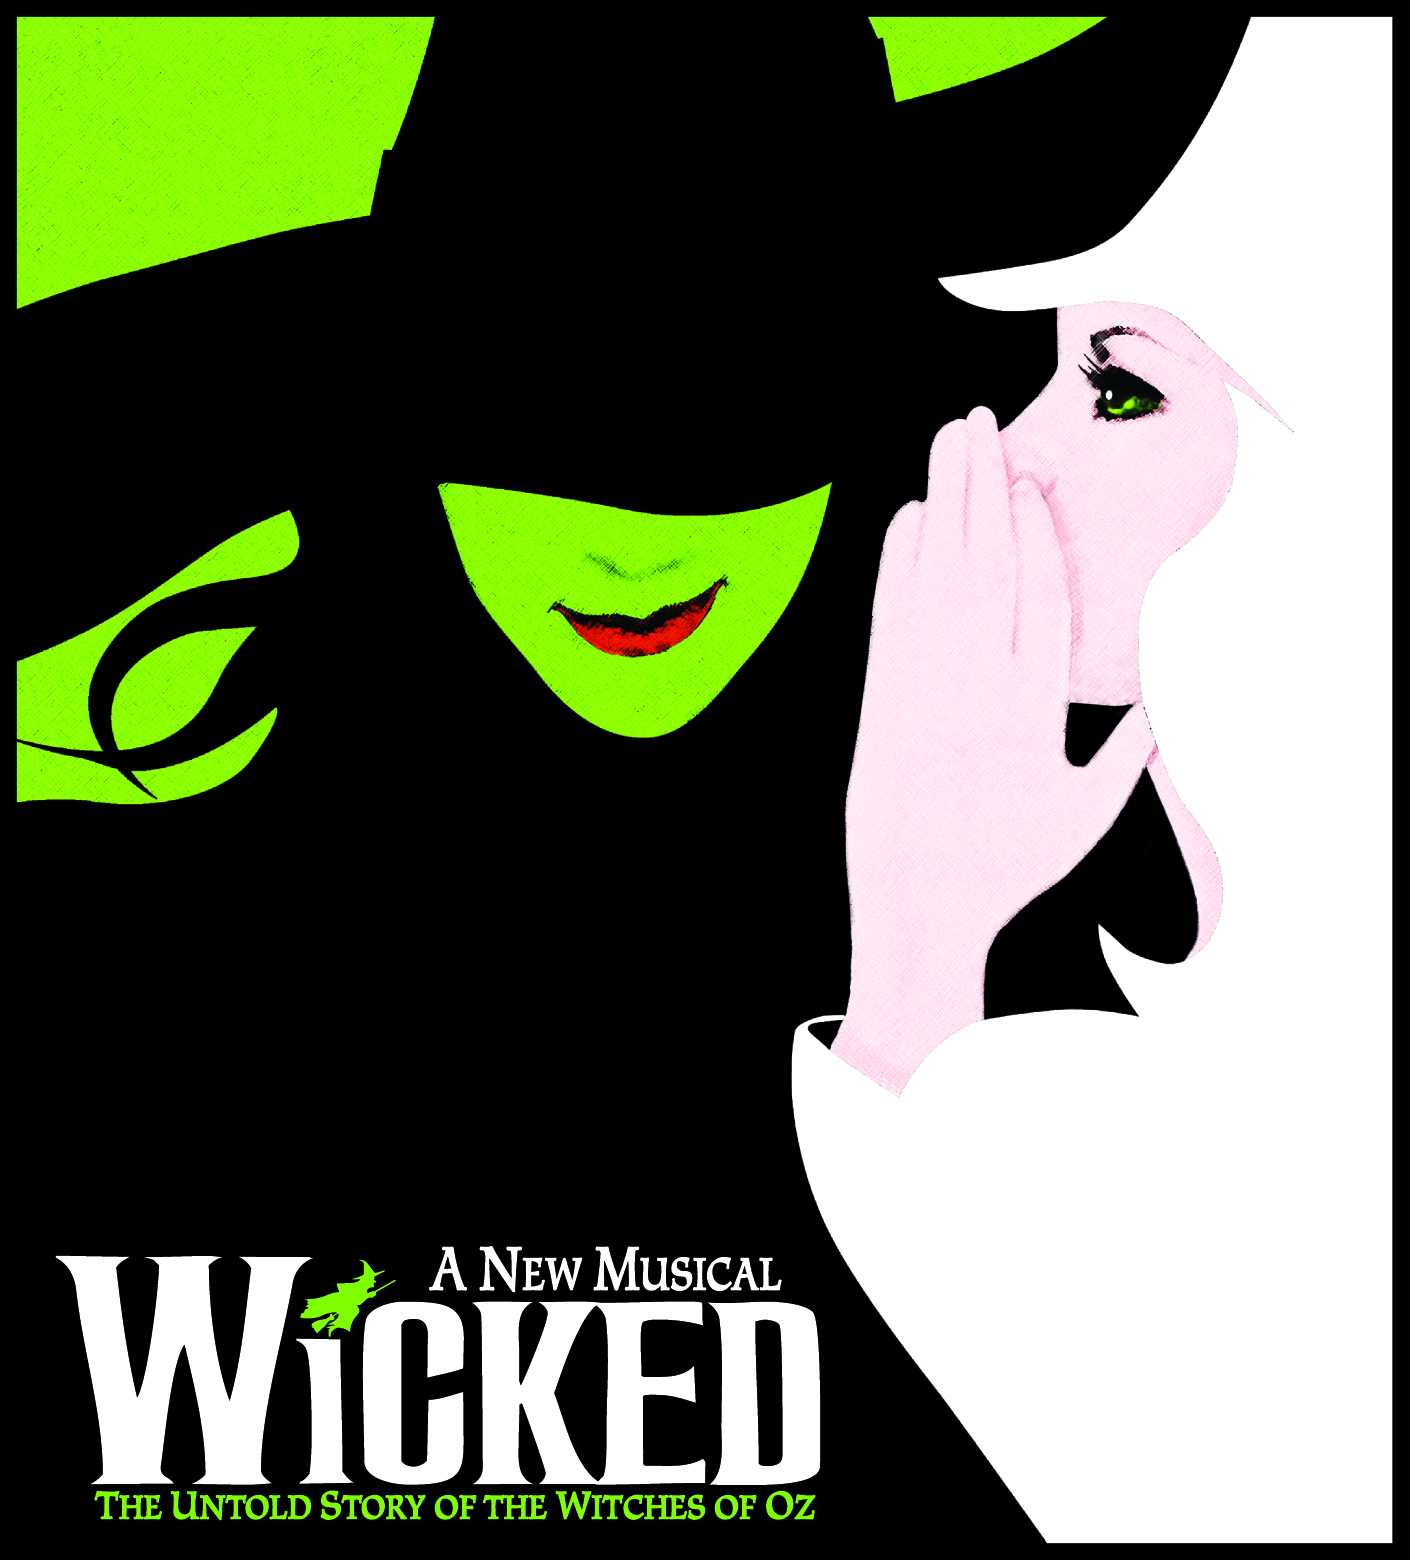 Drama clipart broadway musical. Wicked brings in big